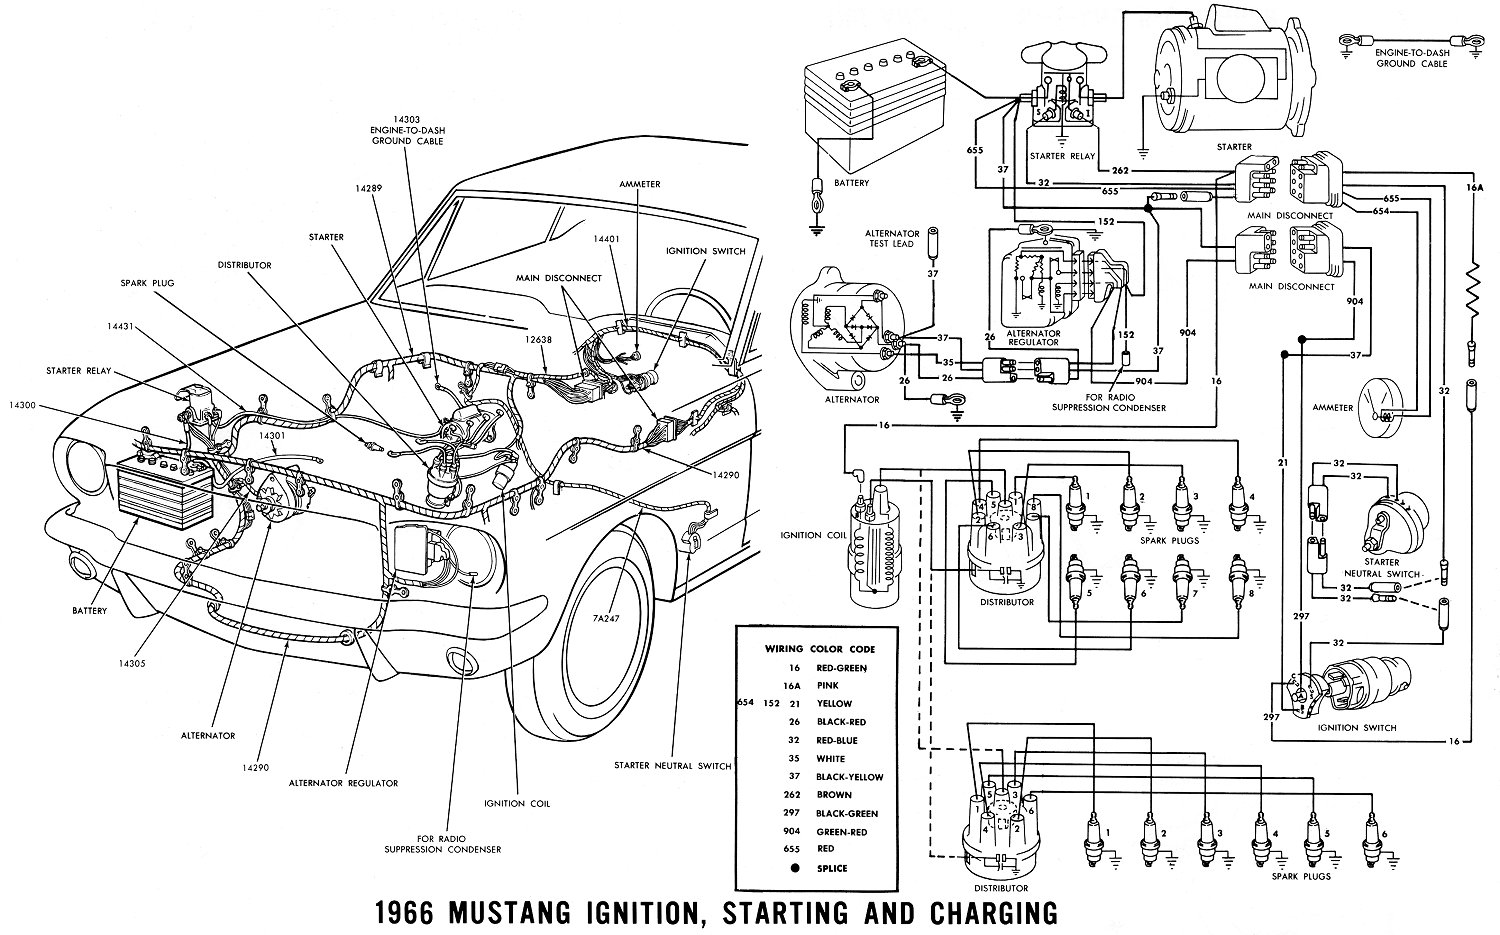 1966 Mustang Ignition Wiring Diagram on fuse box location for 2002 ford explorer